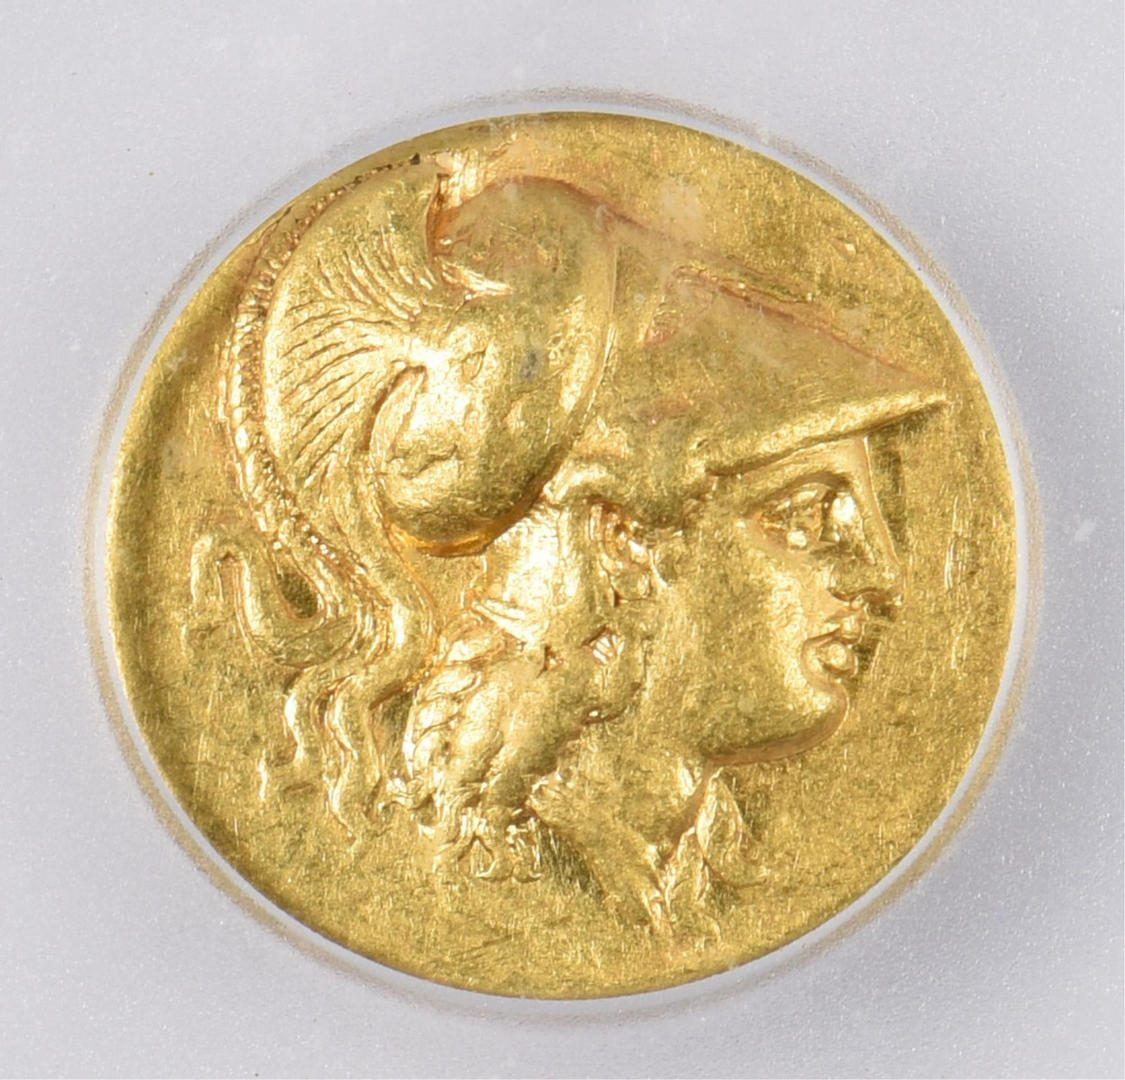 Lot 337: Alexander the Great AV Stater, Aradus Mint